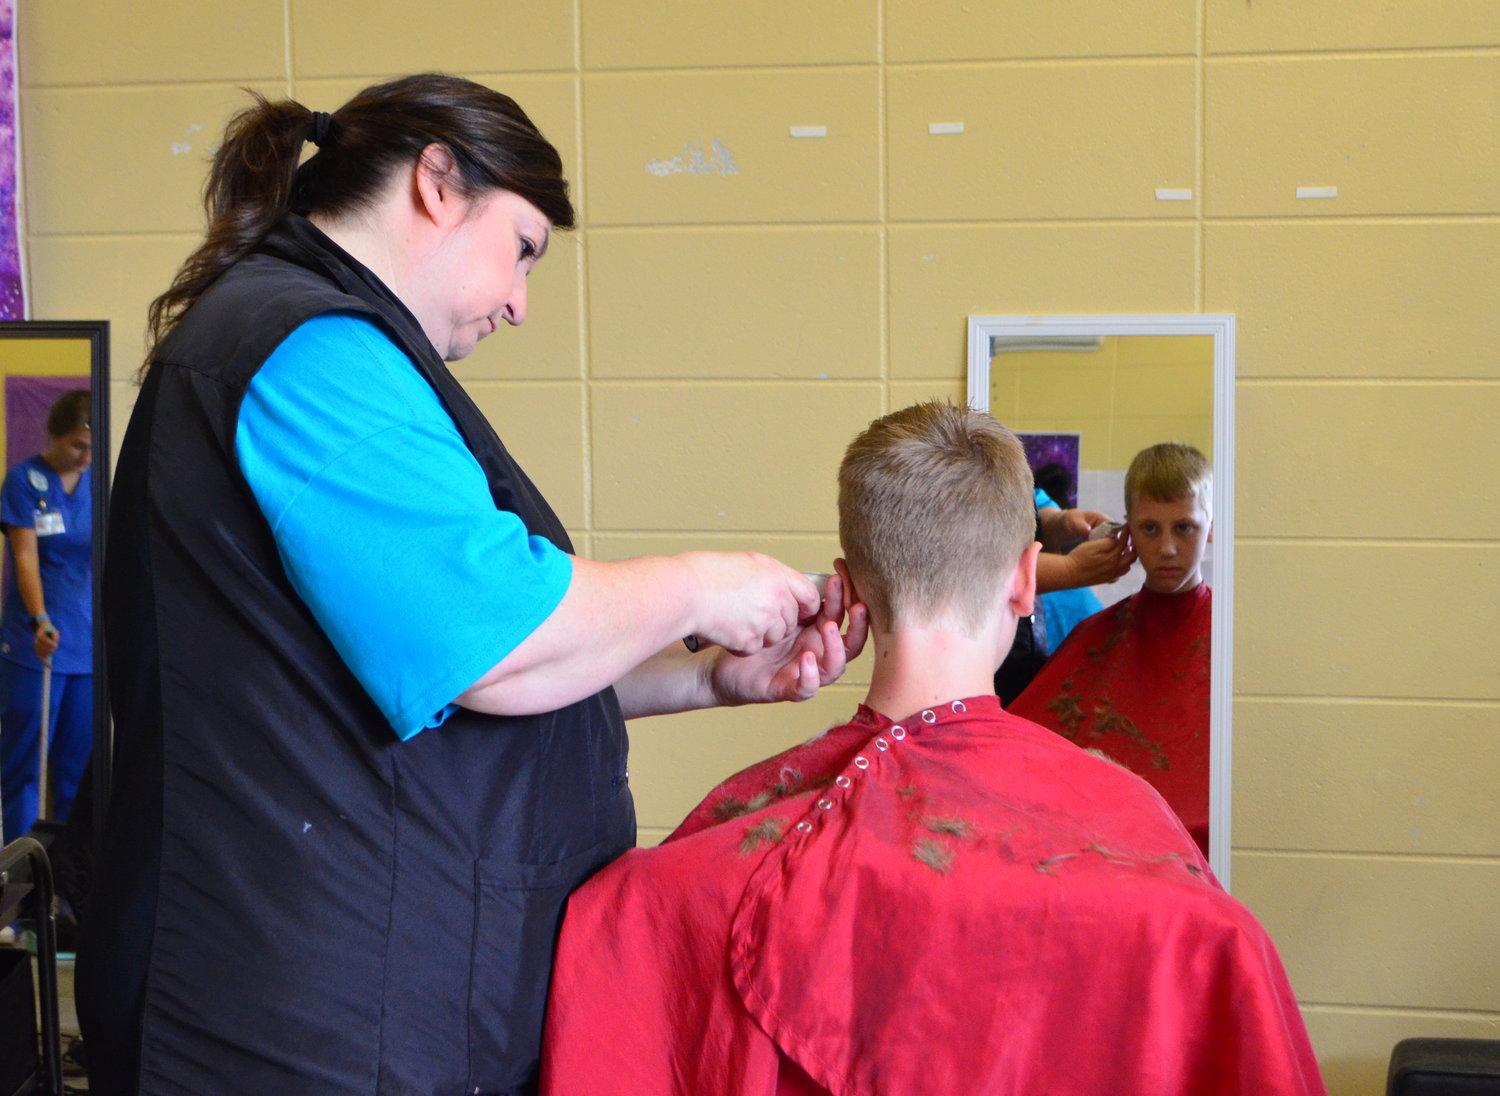 A boy gets a haircut on Saturday in preparation for the first day back to school.